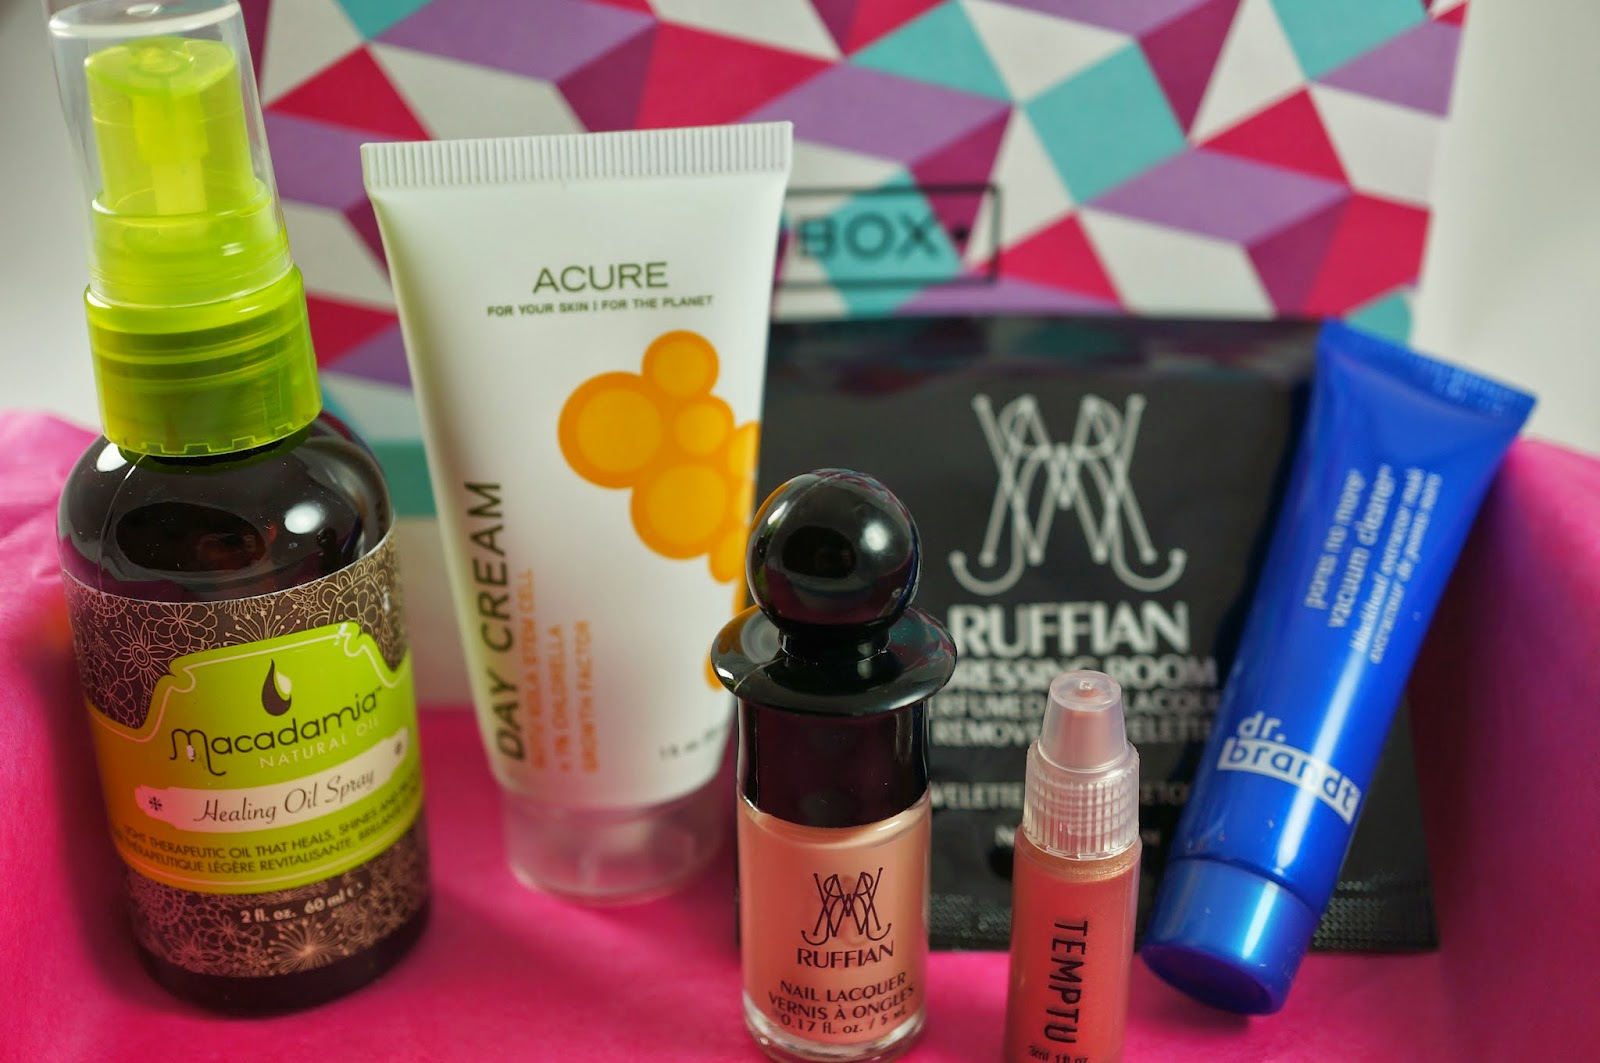 September 2014 Birchbox Unboxing Macadamia Treatment Healing Oil Spray Acure Organics Day Cream gotu kola stem cells CGF chlorella growth factor brandt vacuum cleaner temptu highlighter champagne shimmer ruffian nail lacquer naked dressing room